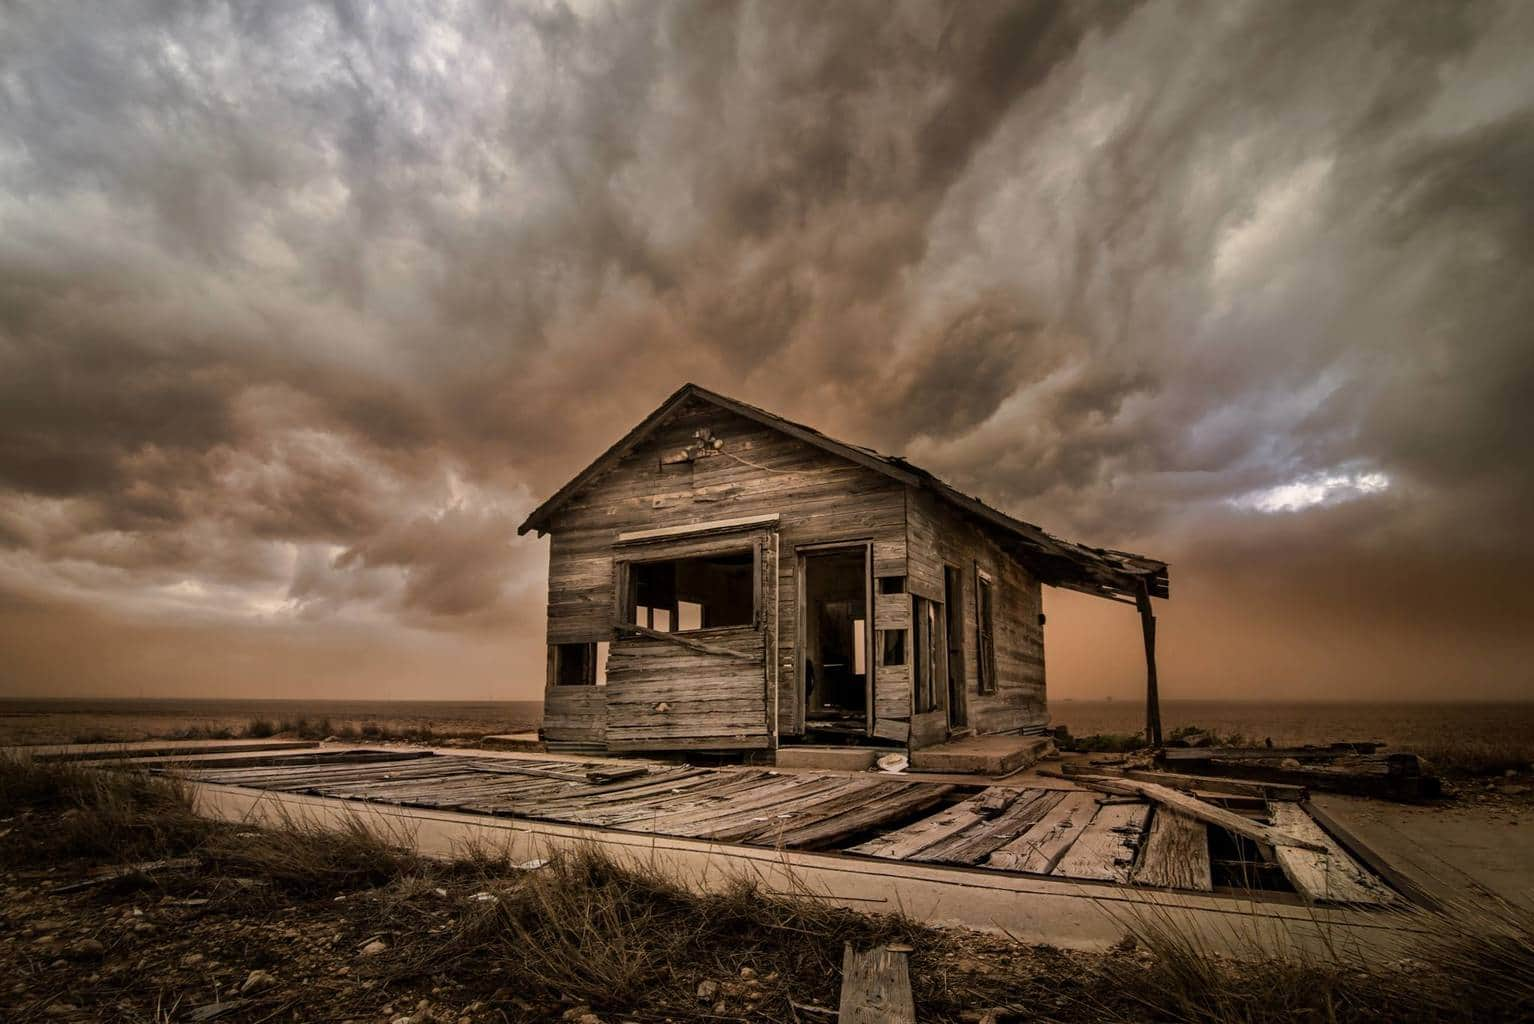 Haboob, its just fun to say..... North of Sweetwater Tx this storm was tornado warned a few minutes prior and cranking out winds over 80mph... General consensus is that its an old weigh station, feel free to share on fb please give a photo credit...